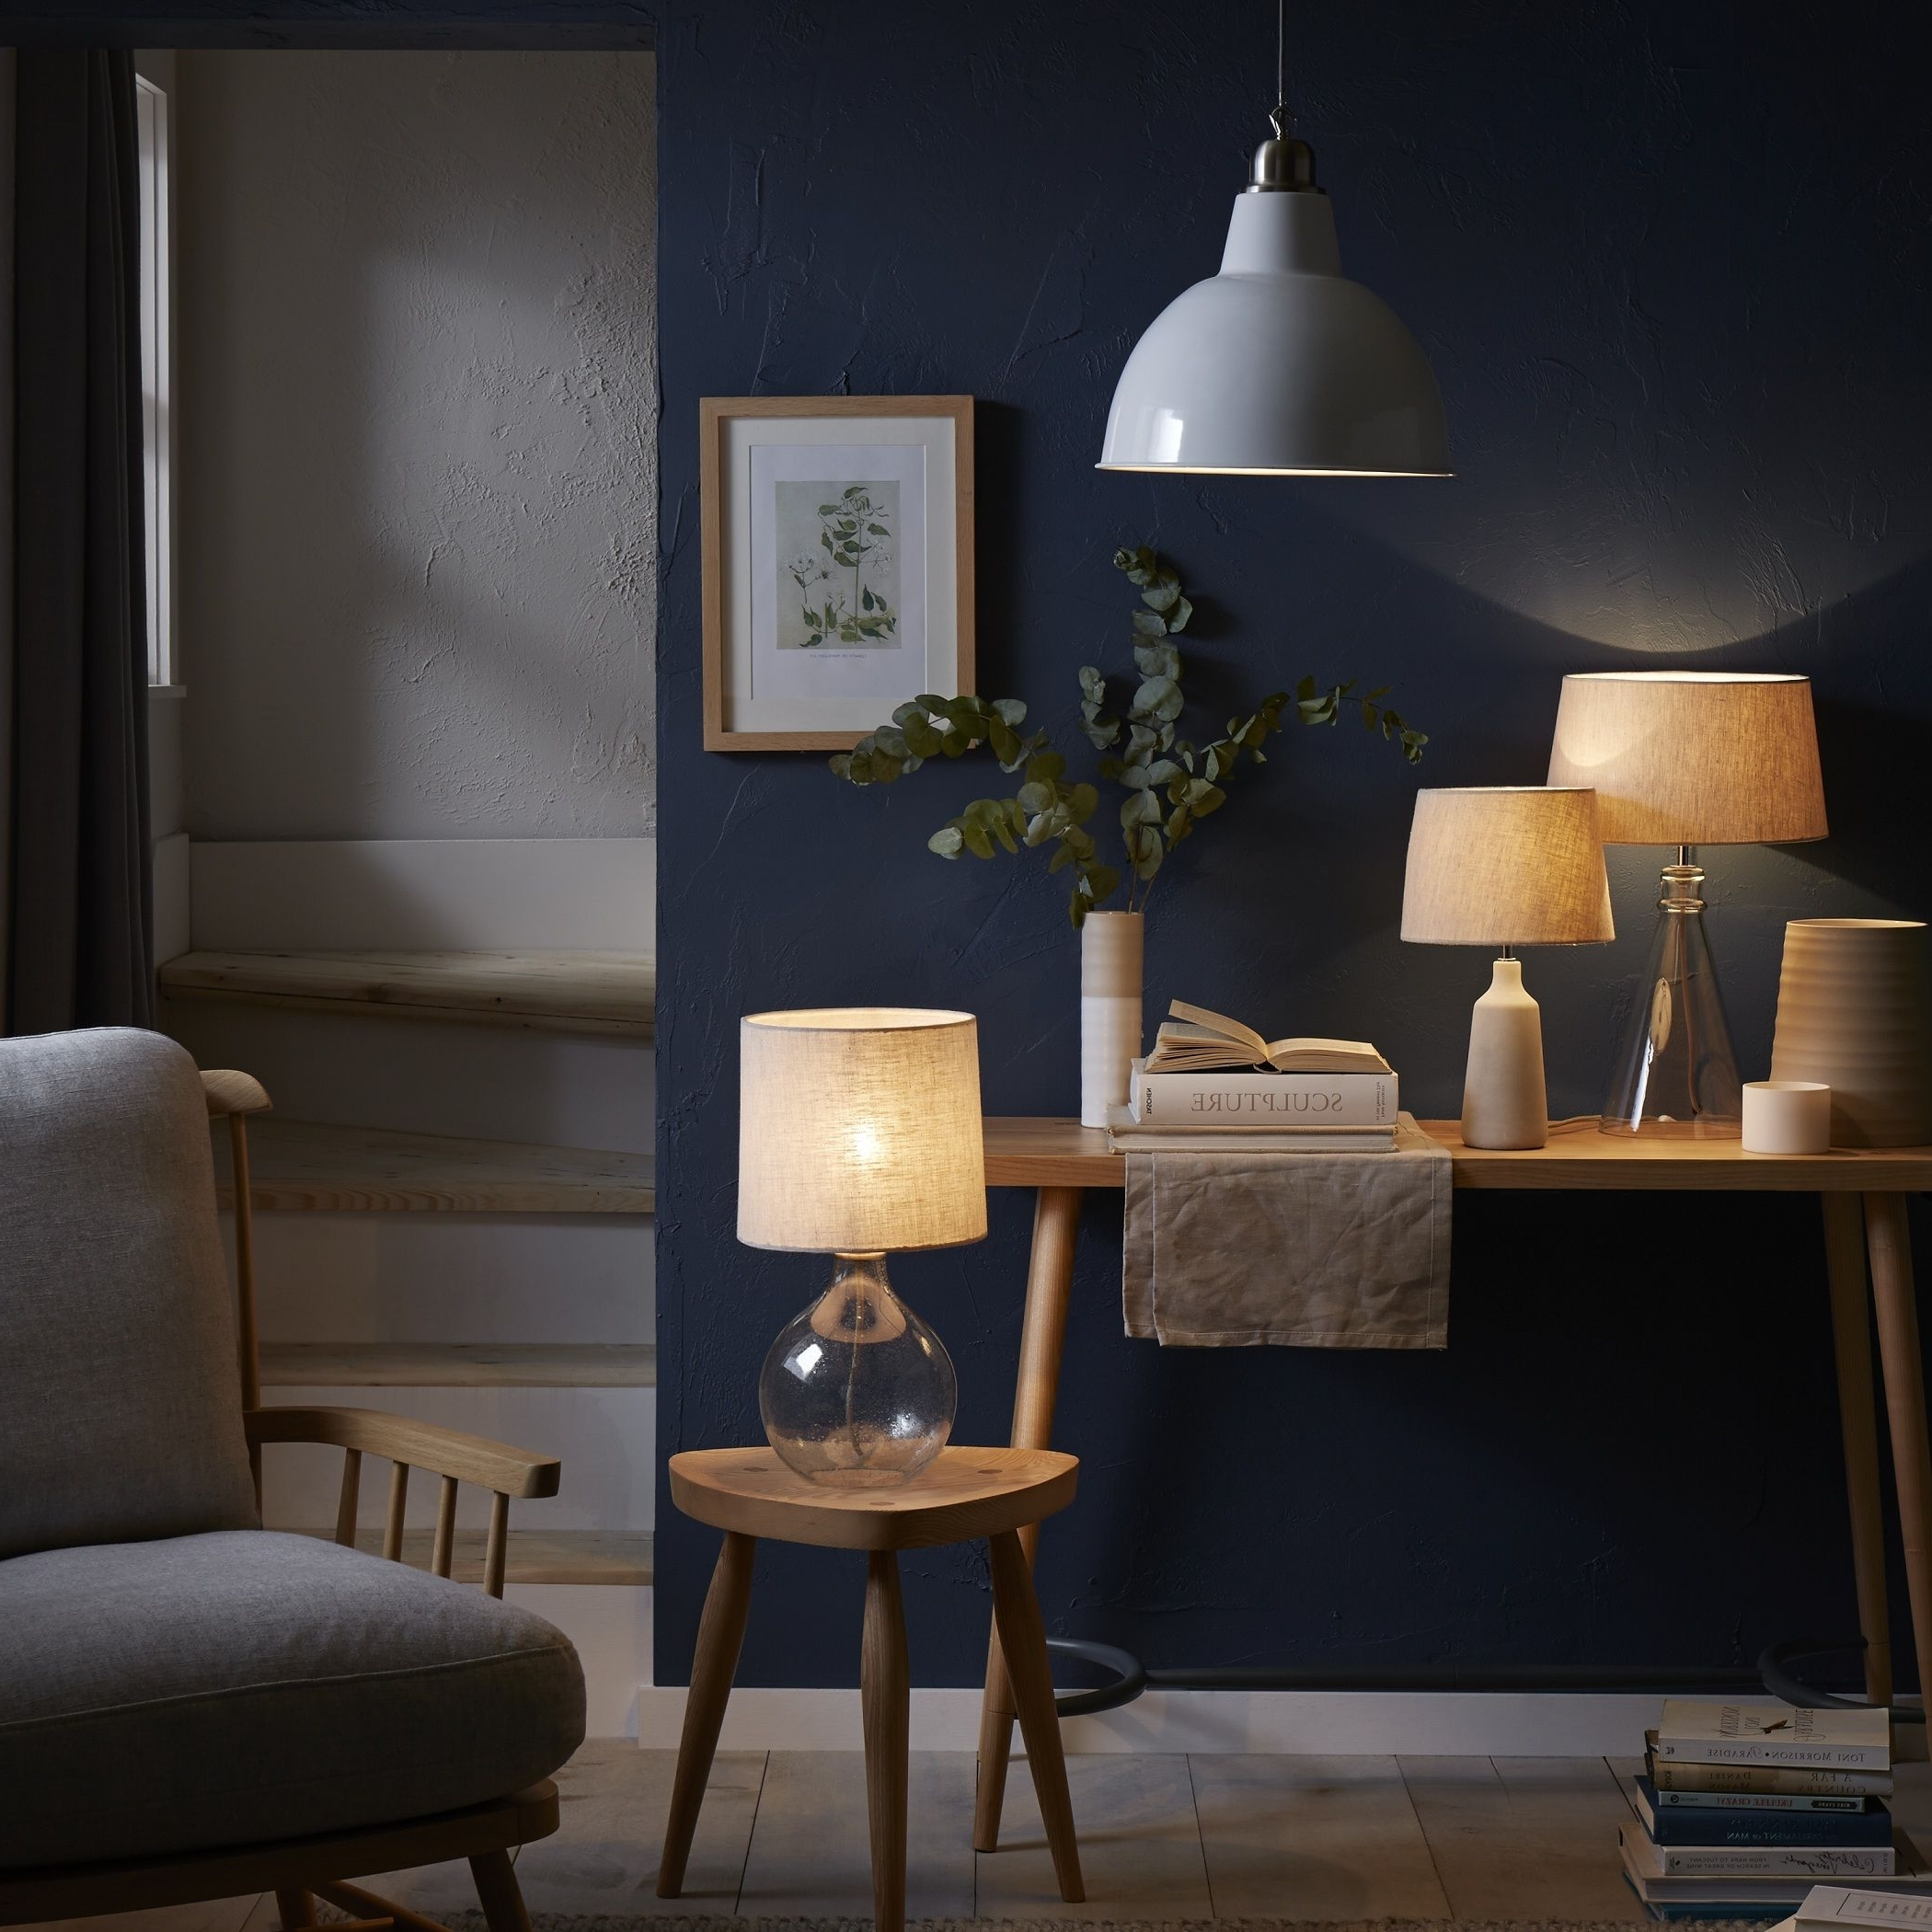 John Lewis Have A Number Of Natural Wood And Glass Lighting Designs Within Latest John Lewis Table Lamps For Living Room (View 9 of 20)